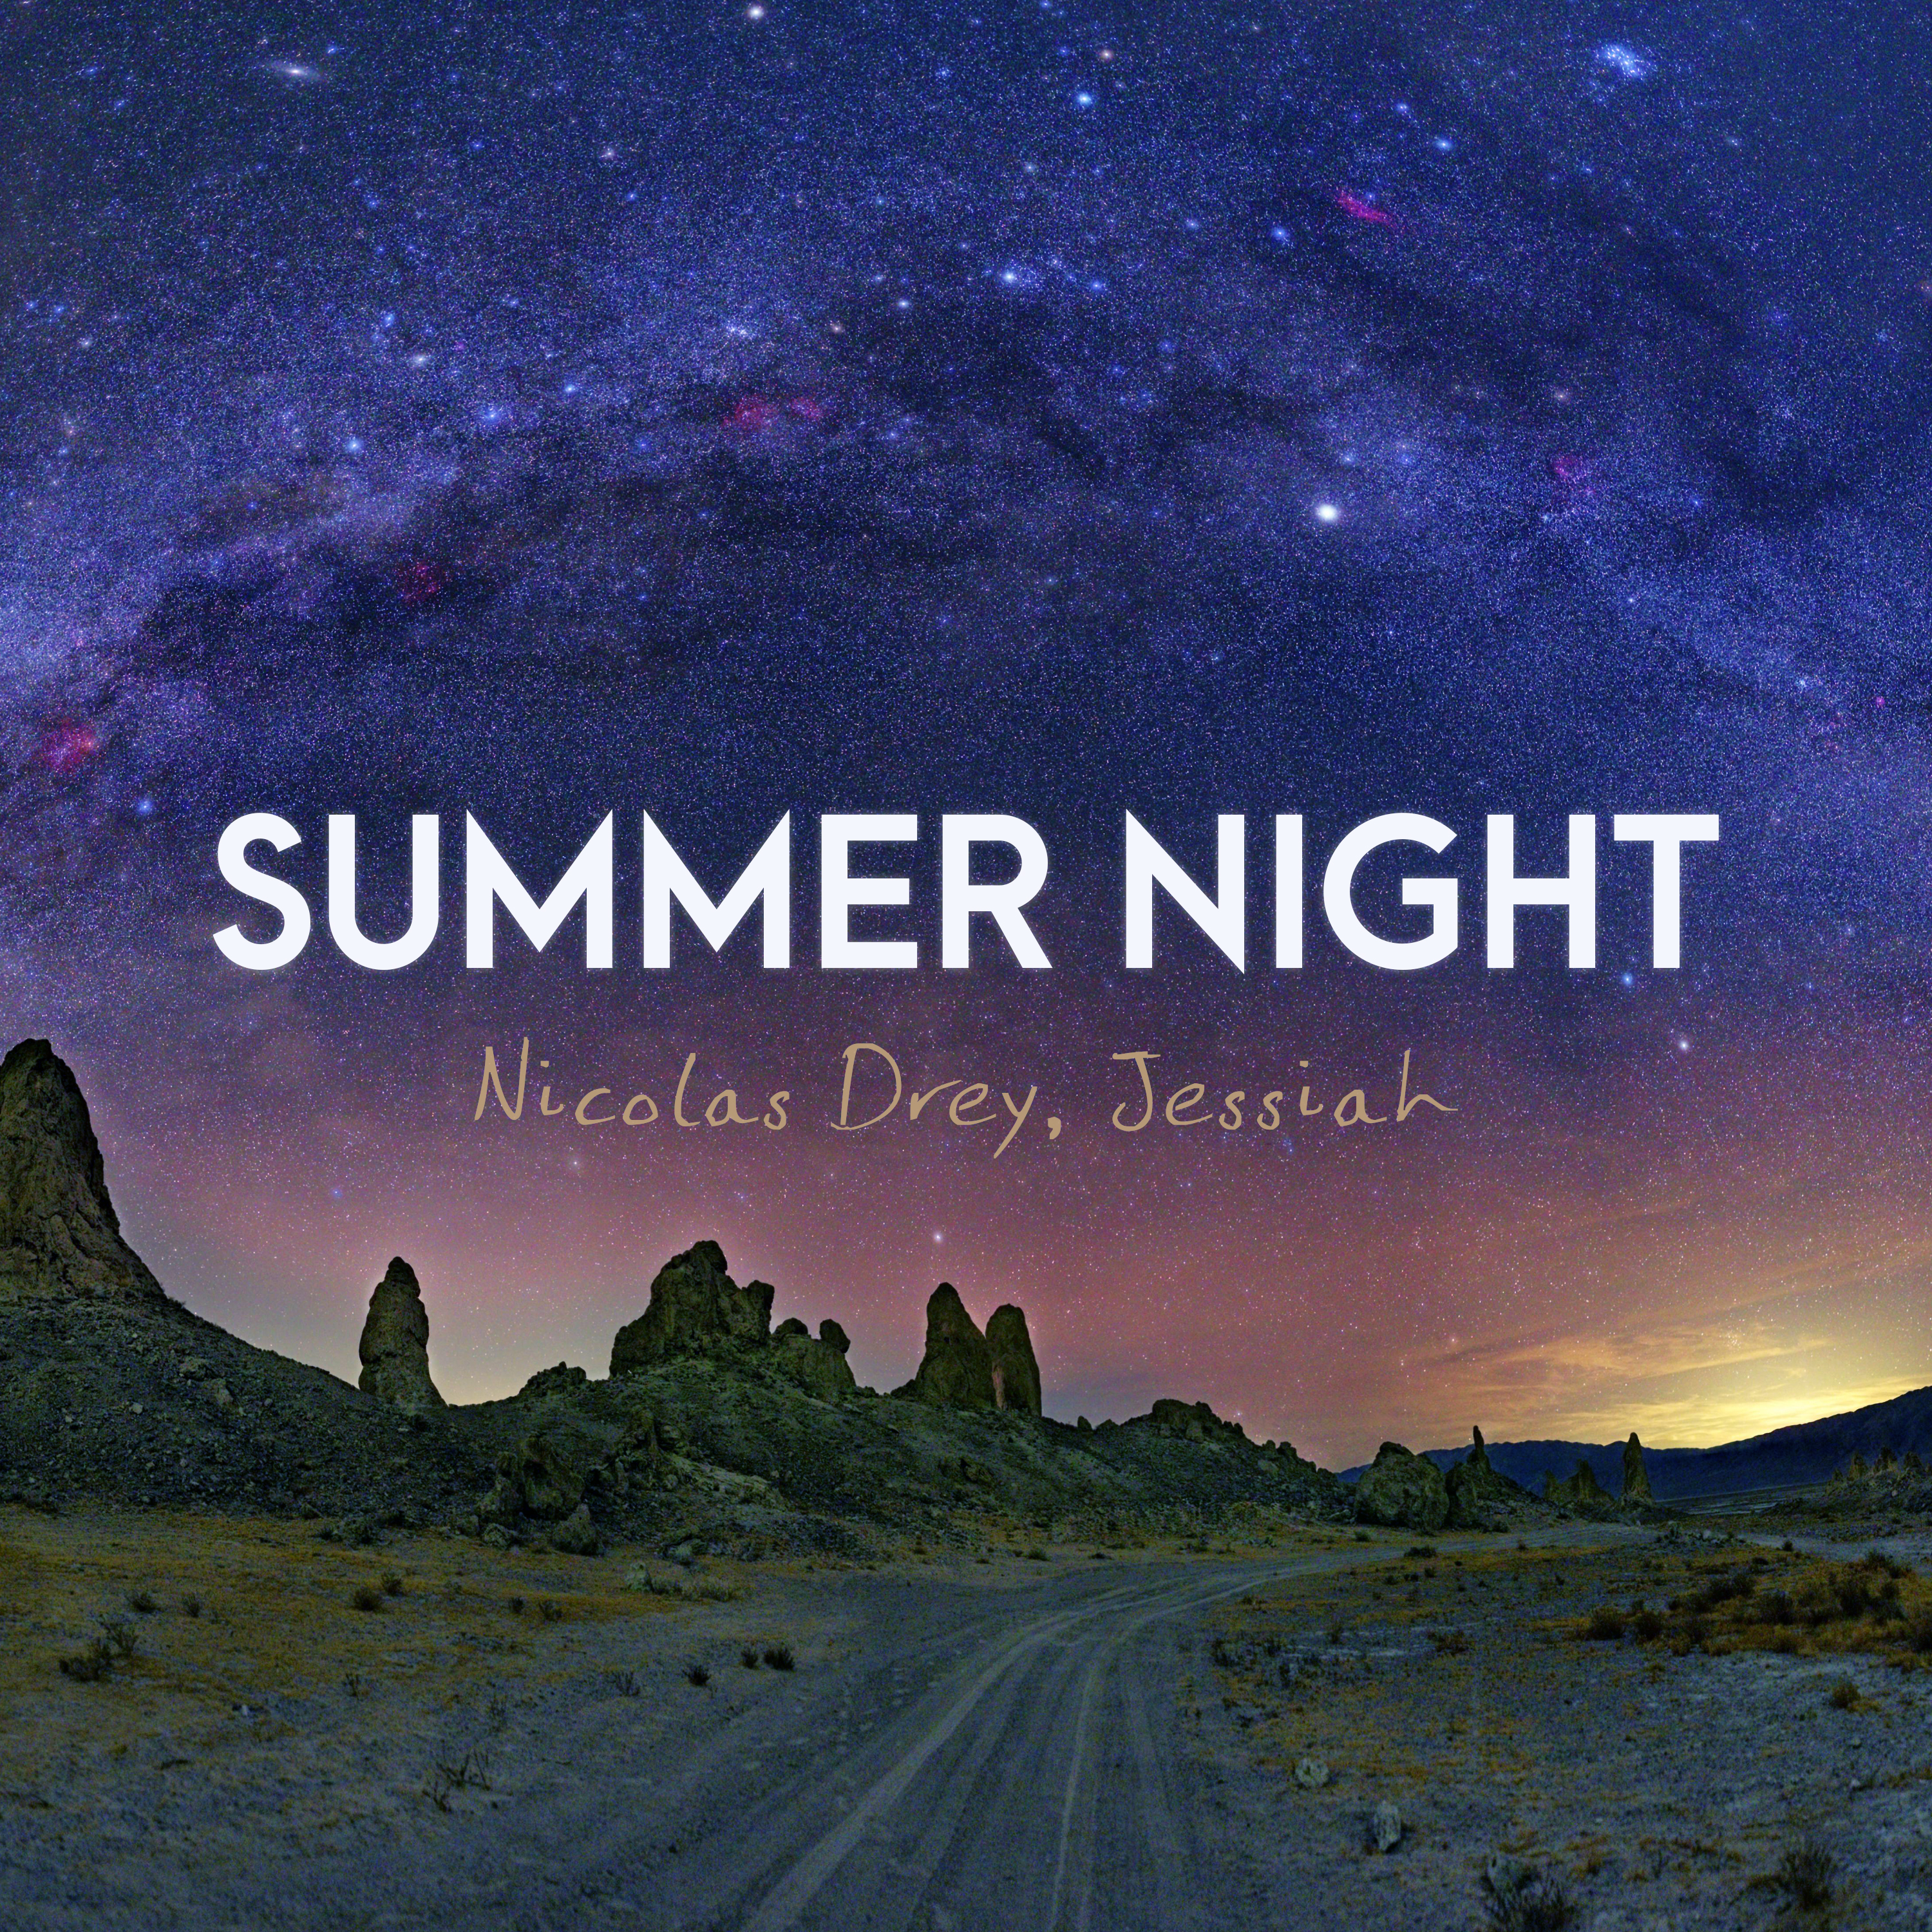 Sumer Night, Nicolas Drey-Jessiah - Artwork